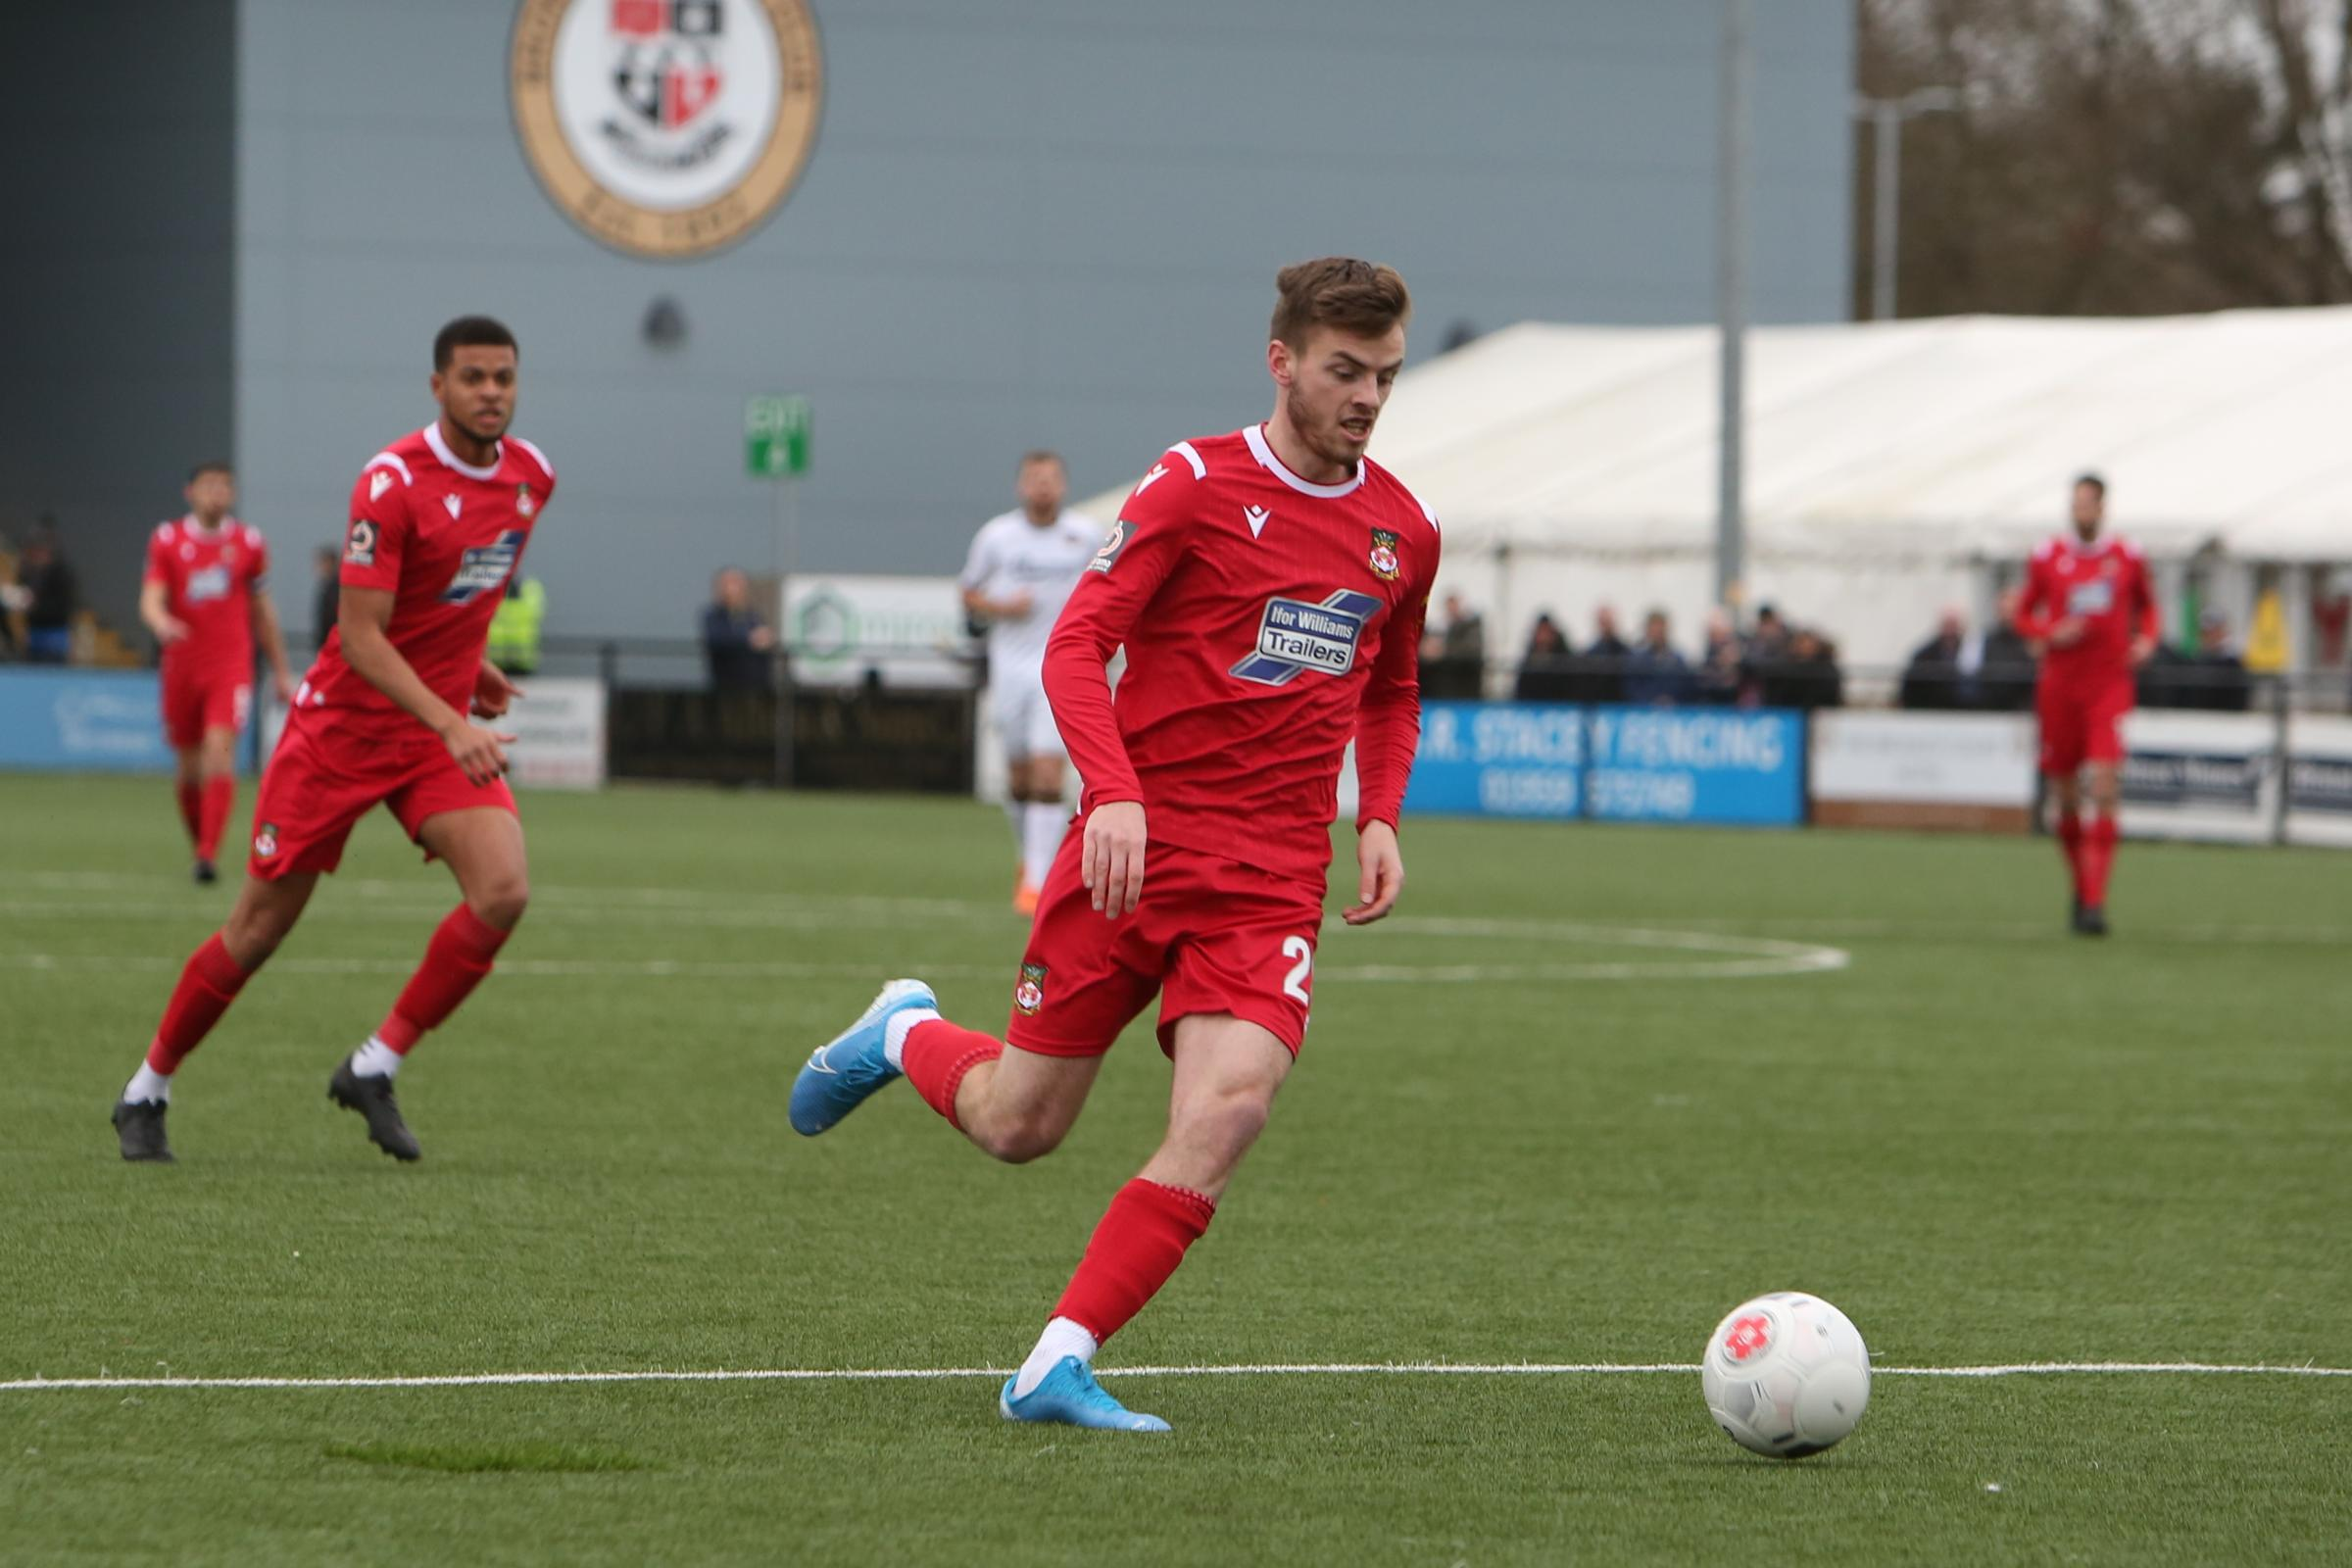 Dan Jarvis says the Wrexham AFC front three have shown they can cause opposition defences problems